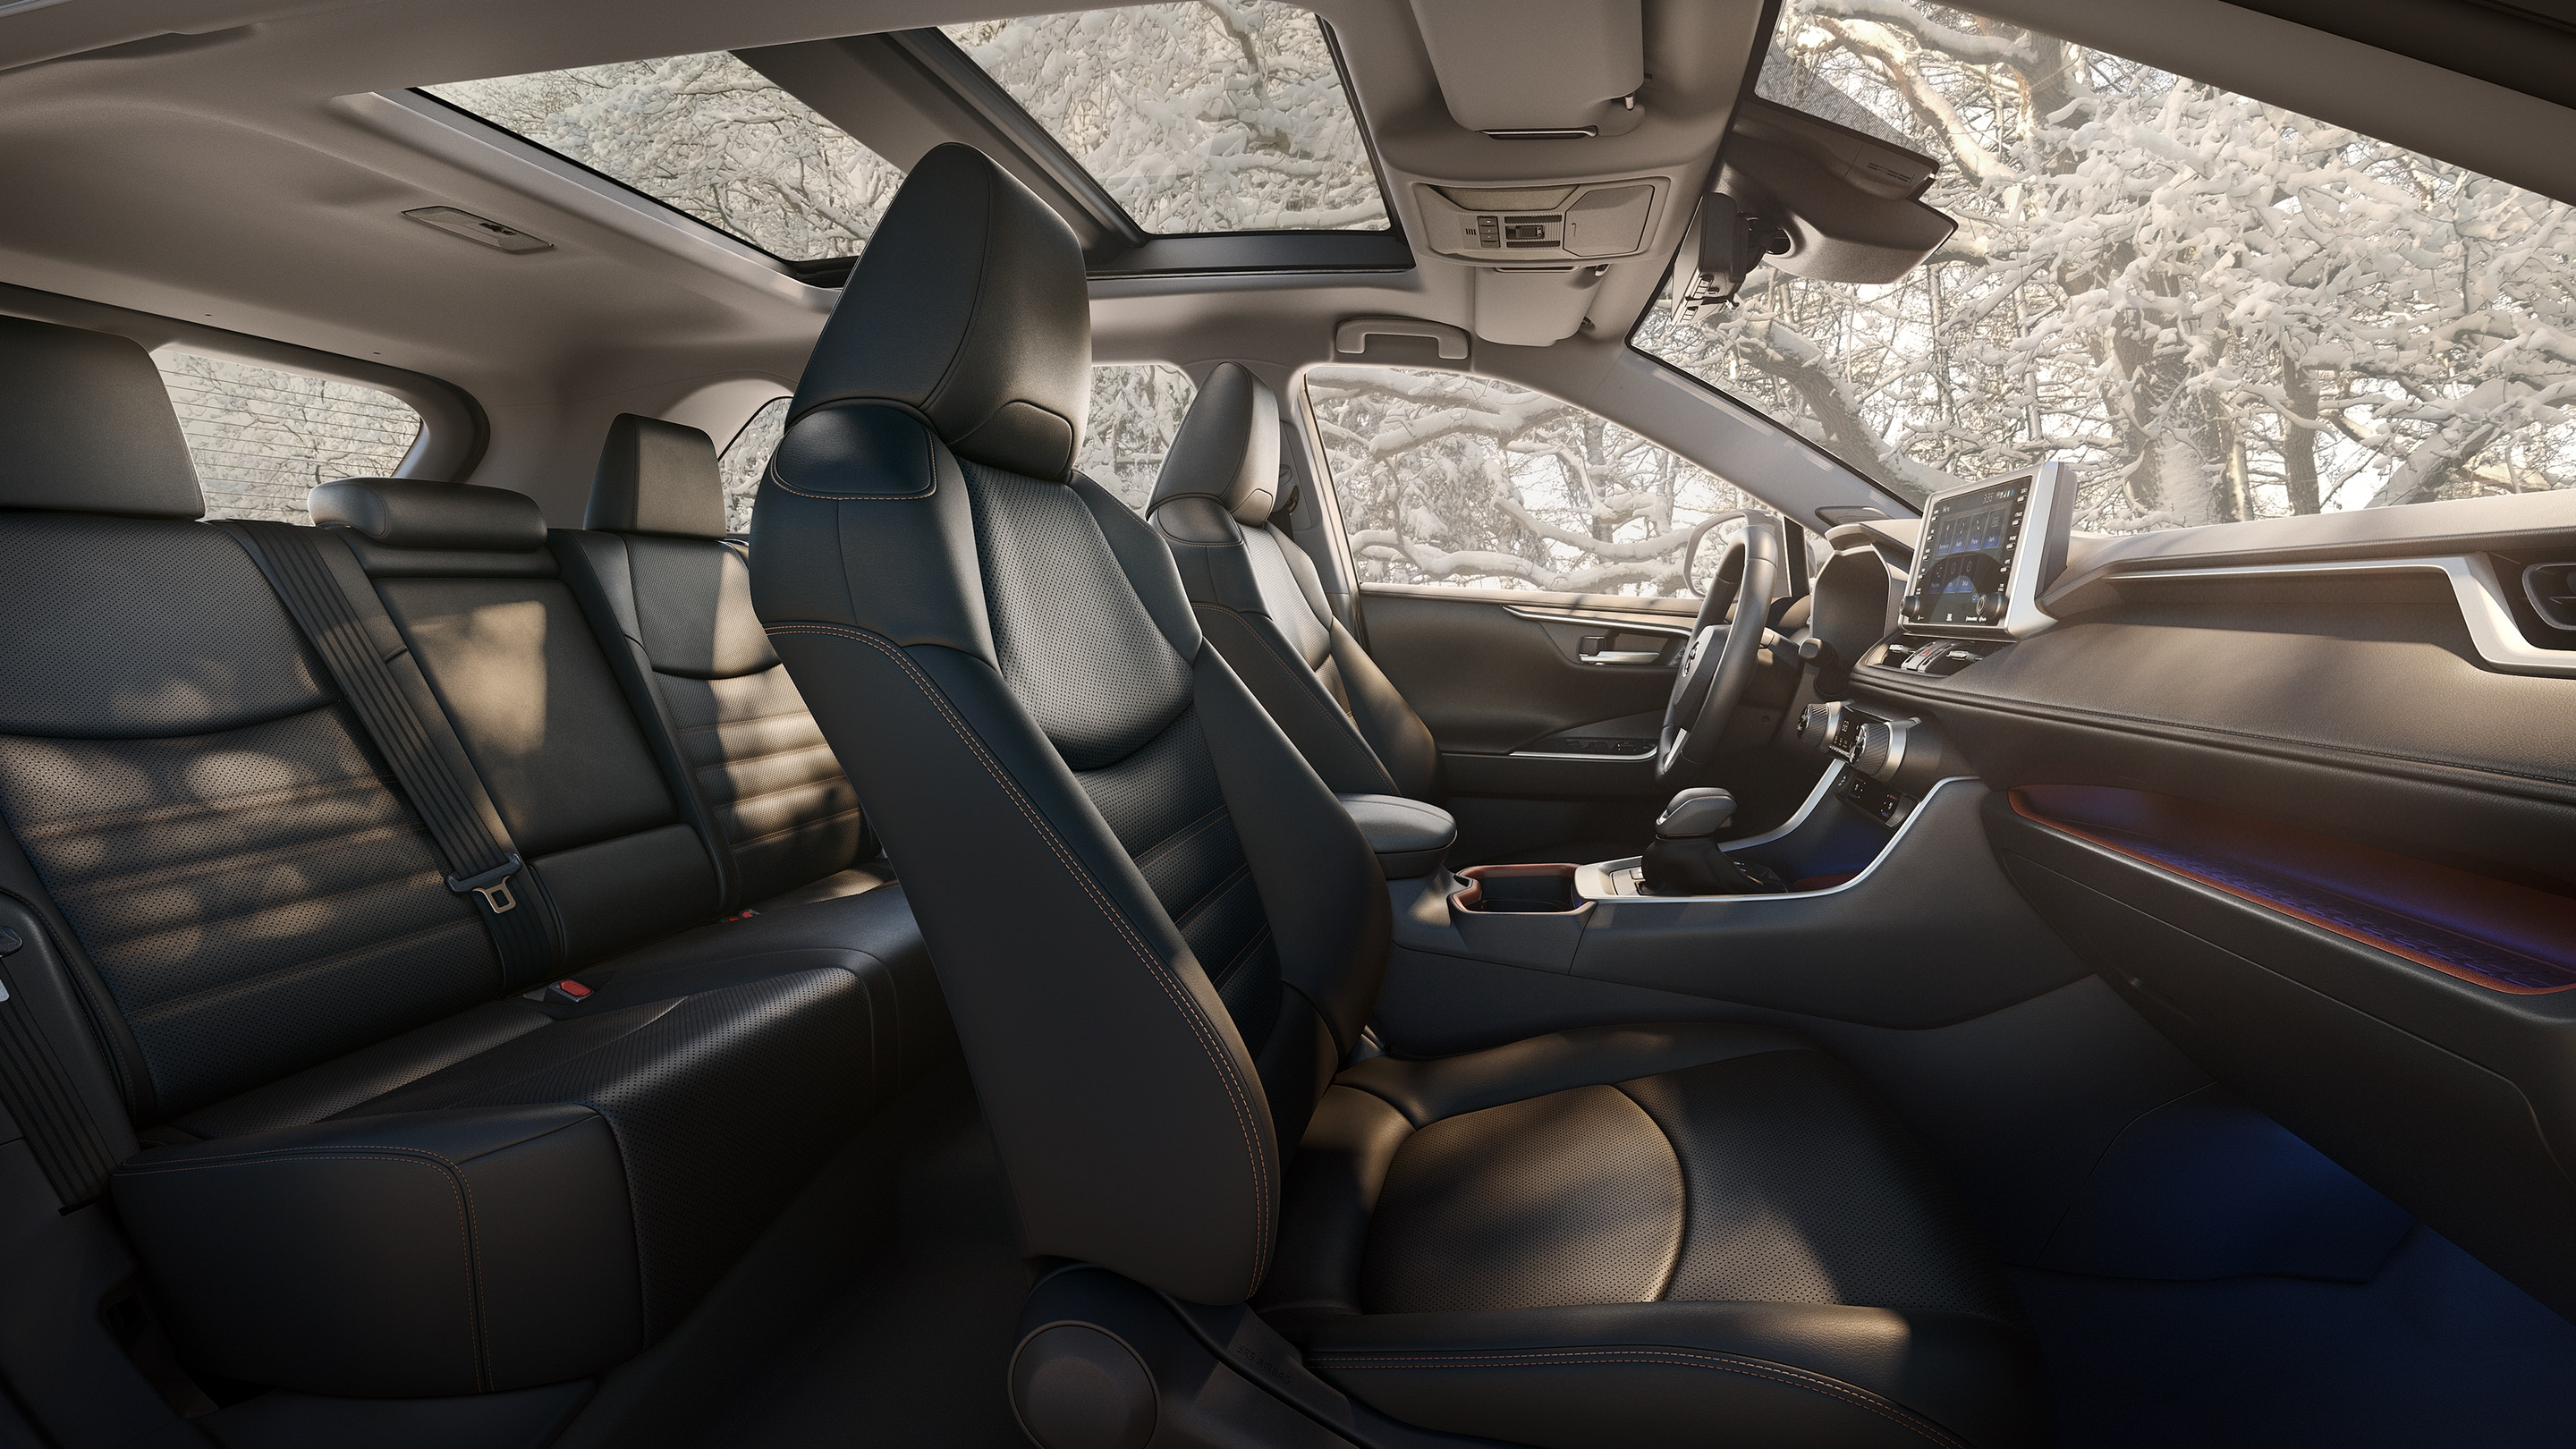 Spacious Cabin of the 2019 RAV4